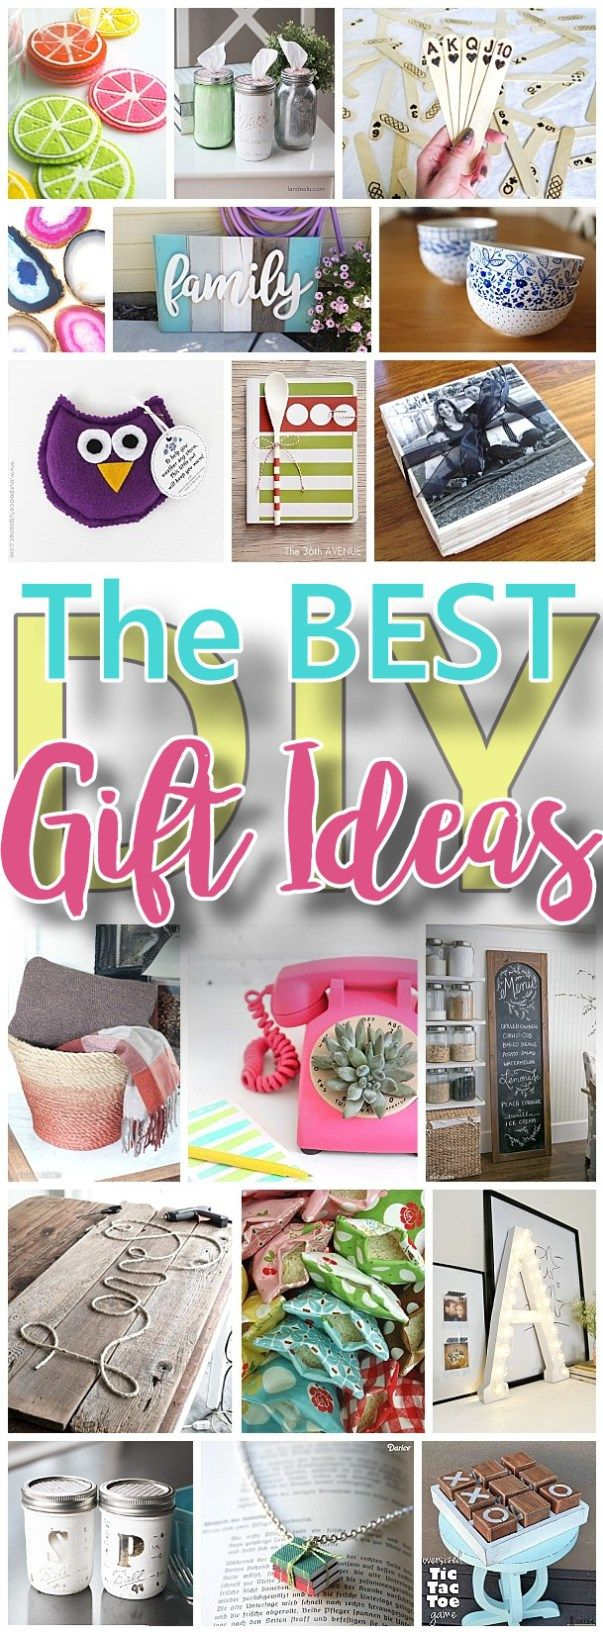 The best do it yourself gifts fun clever and unique diy craft the best do it yourself gifts fun clever and unique diy craft projects and ideas for christmas birthdays thank you or any occasion solutioingenieria Choice Image